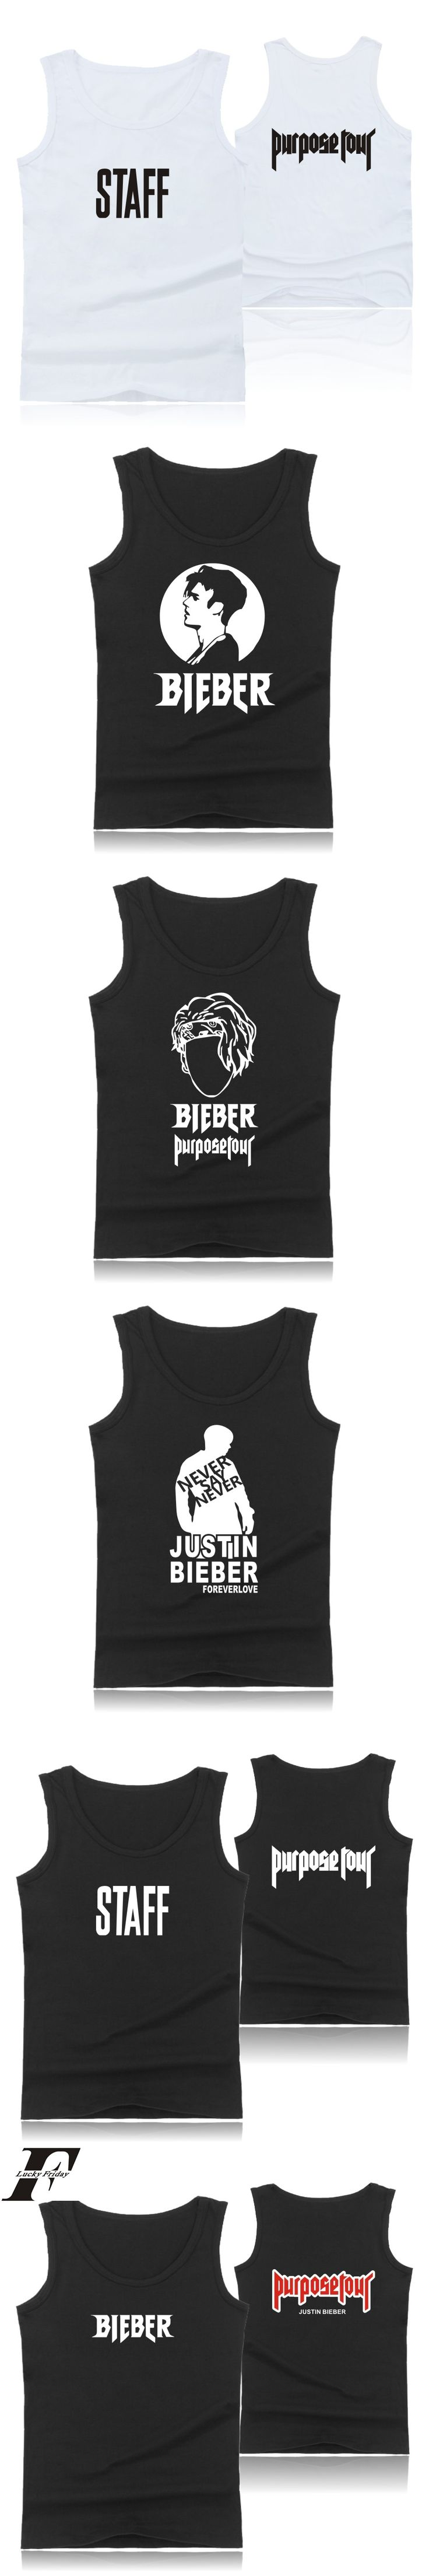 LUCKYFRIDAYF Justin Bierber Purpose Tour Plus Size Muscle Tank Tops for Men Summer Vests  Sleeveless clothes new fashion